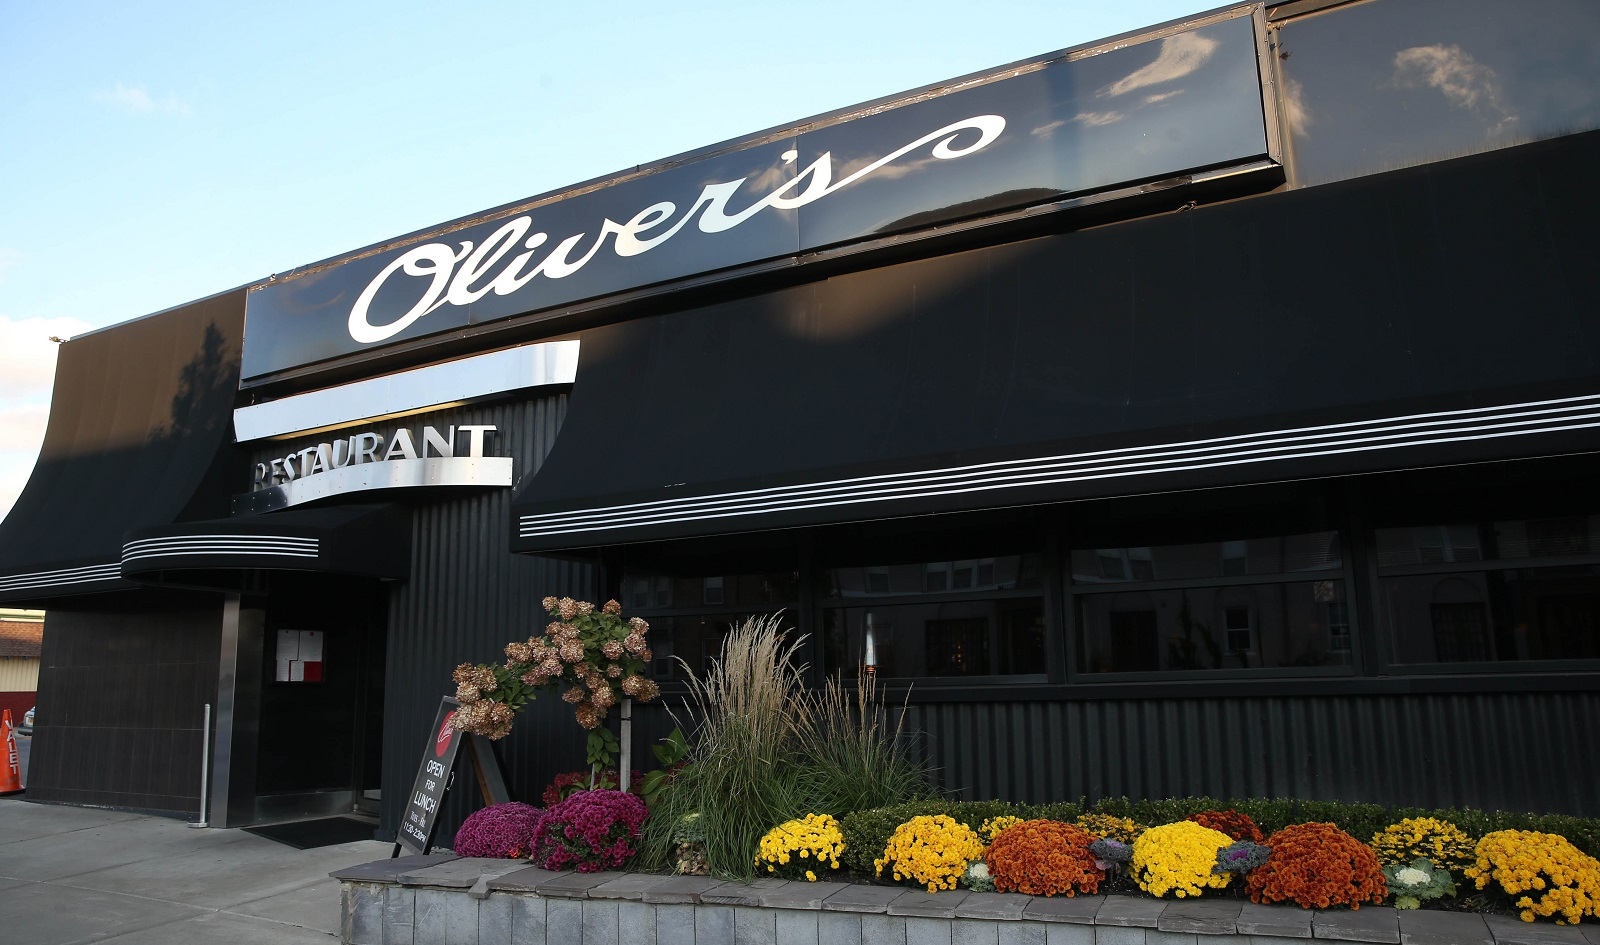 Oliver's Restaurant at 2095 Delaware Ave. has been synonymous with fine dining for decades in Buffalo. They have Tasting Tuesdays, progressive dinners that change weekly. (Sharon Cantillon/Buffalo News)